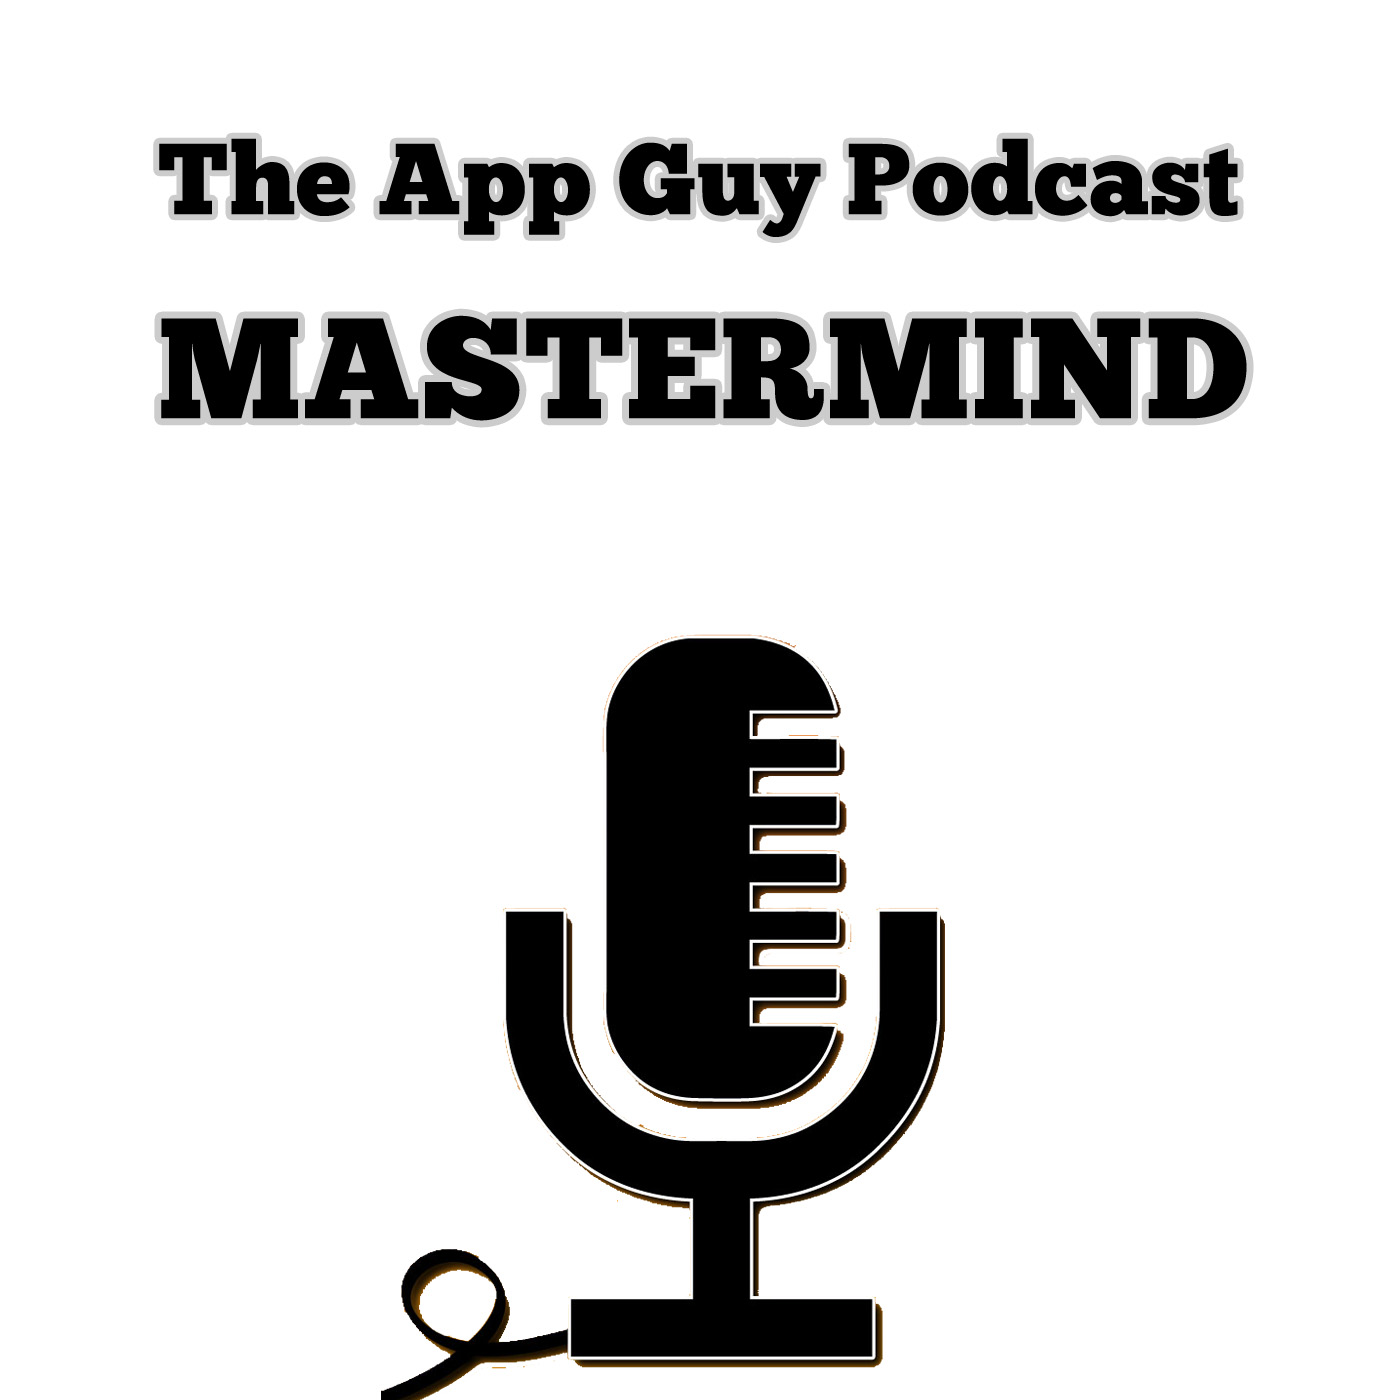 TAGP:MASTERMIND PODCAST - The App Guy